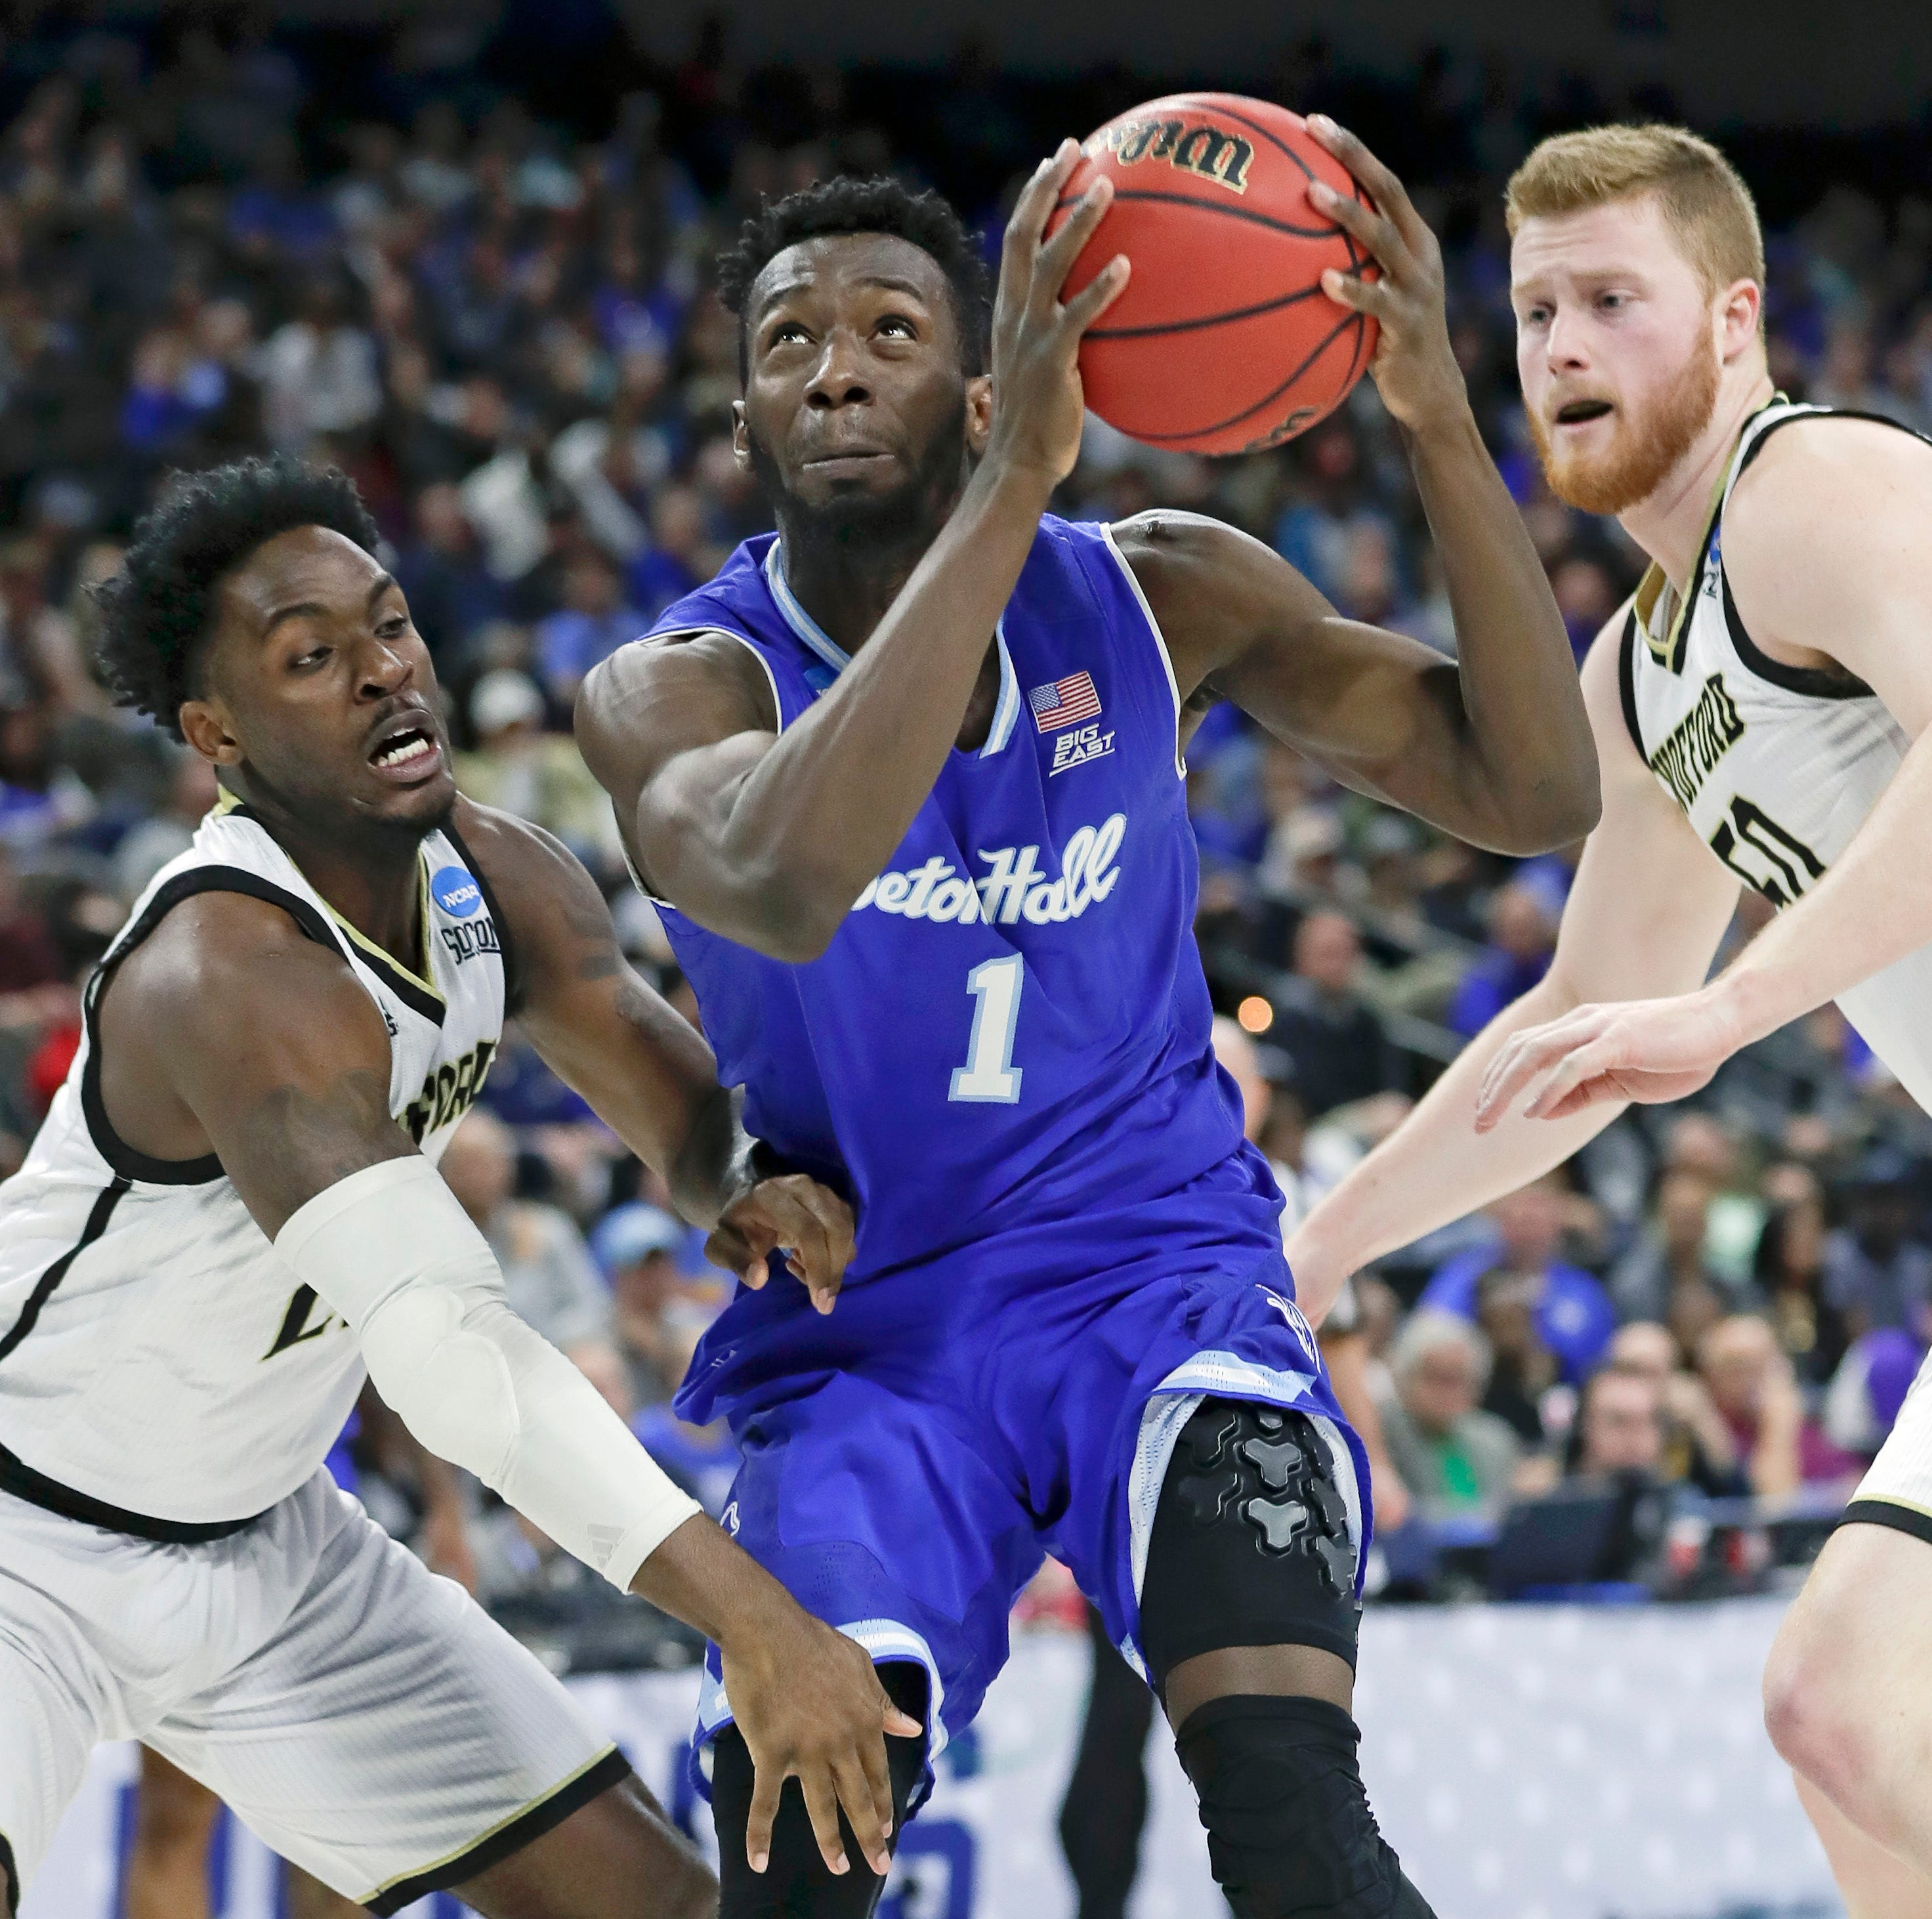 Wofford guard, Kentucky native Tray Hollowell is ready for a shot at UK